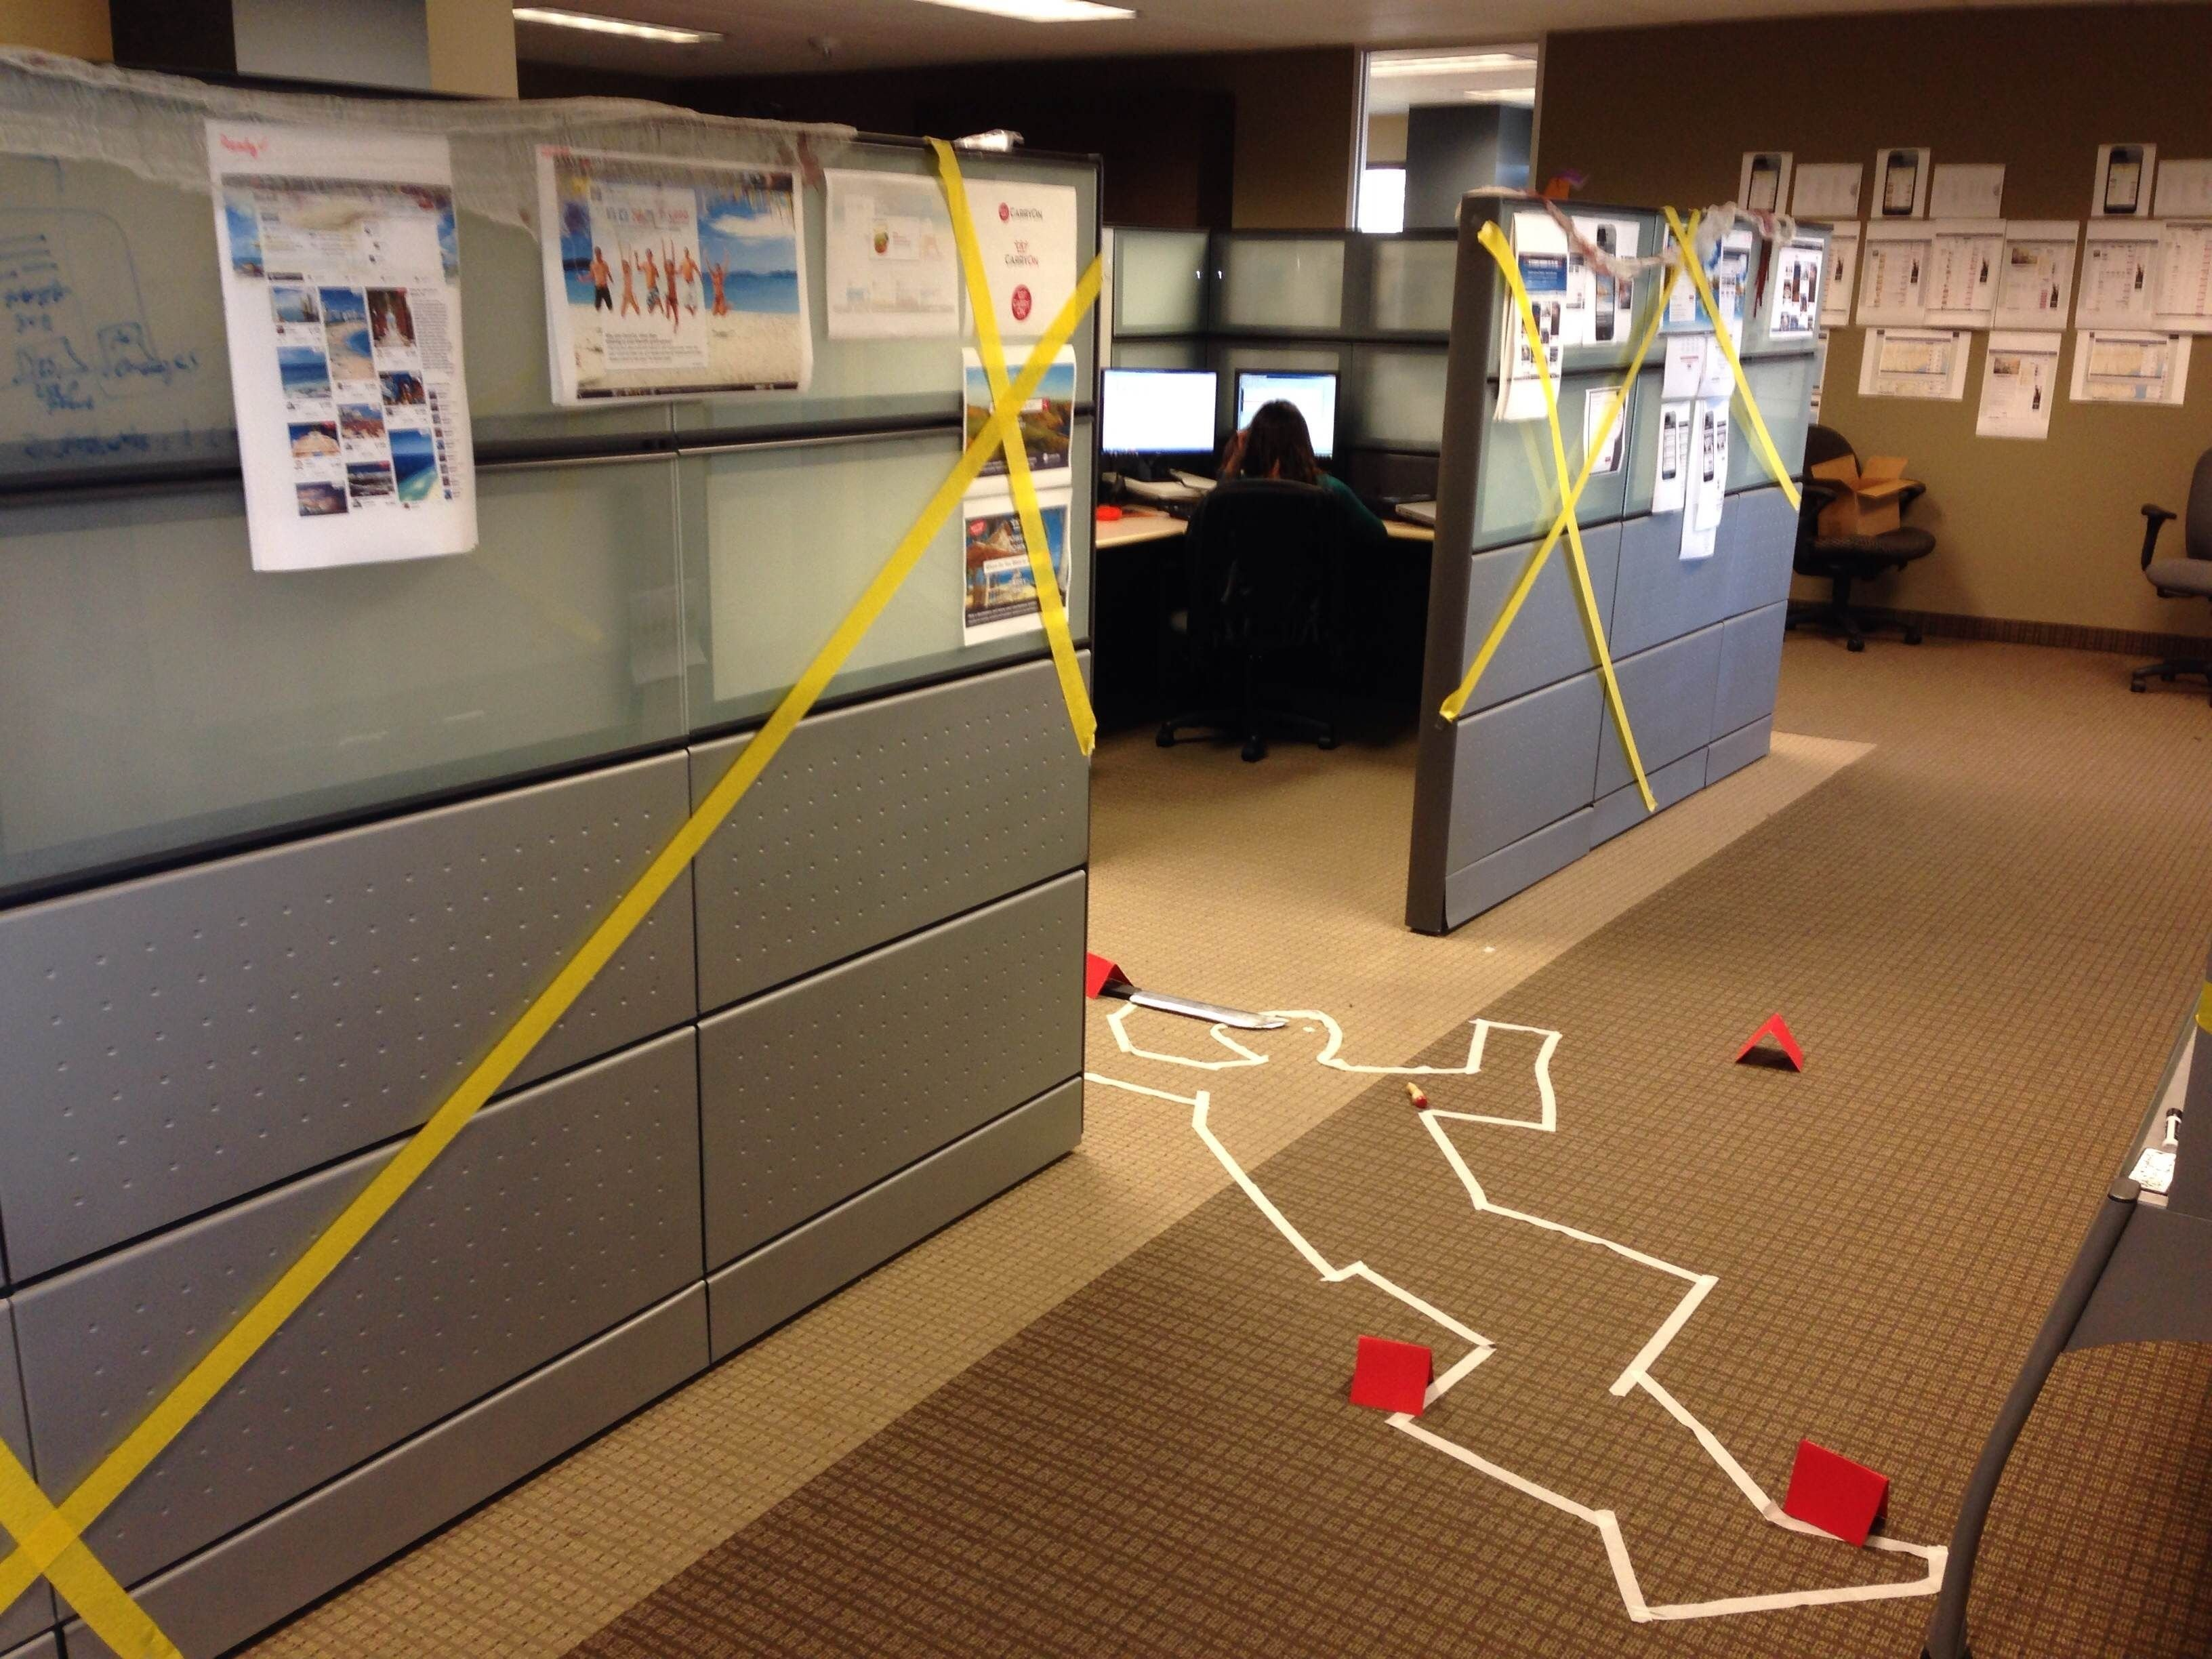 10 Pretty Halloween Ideas For The Office cube decorating contest in the office happy halloween crime scene 1 2020